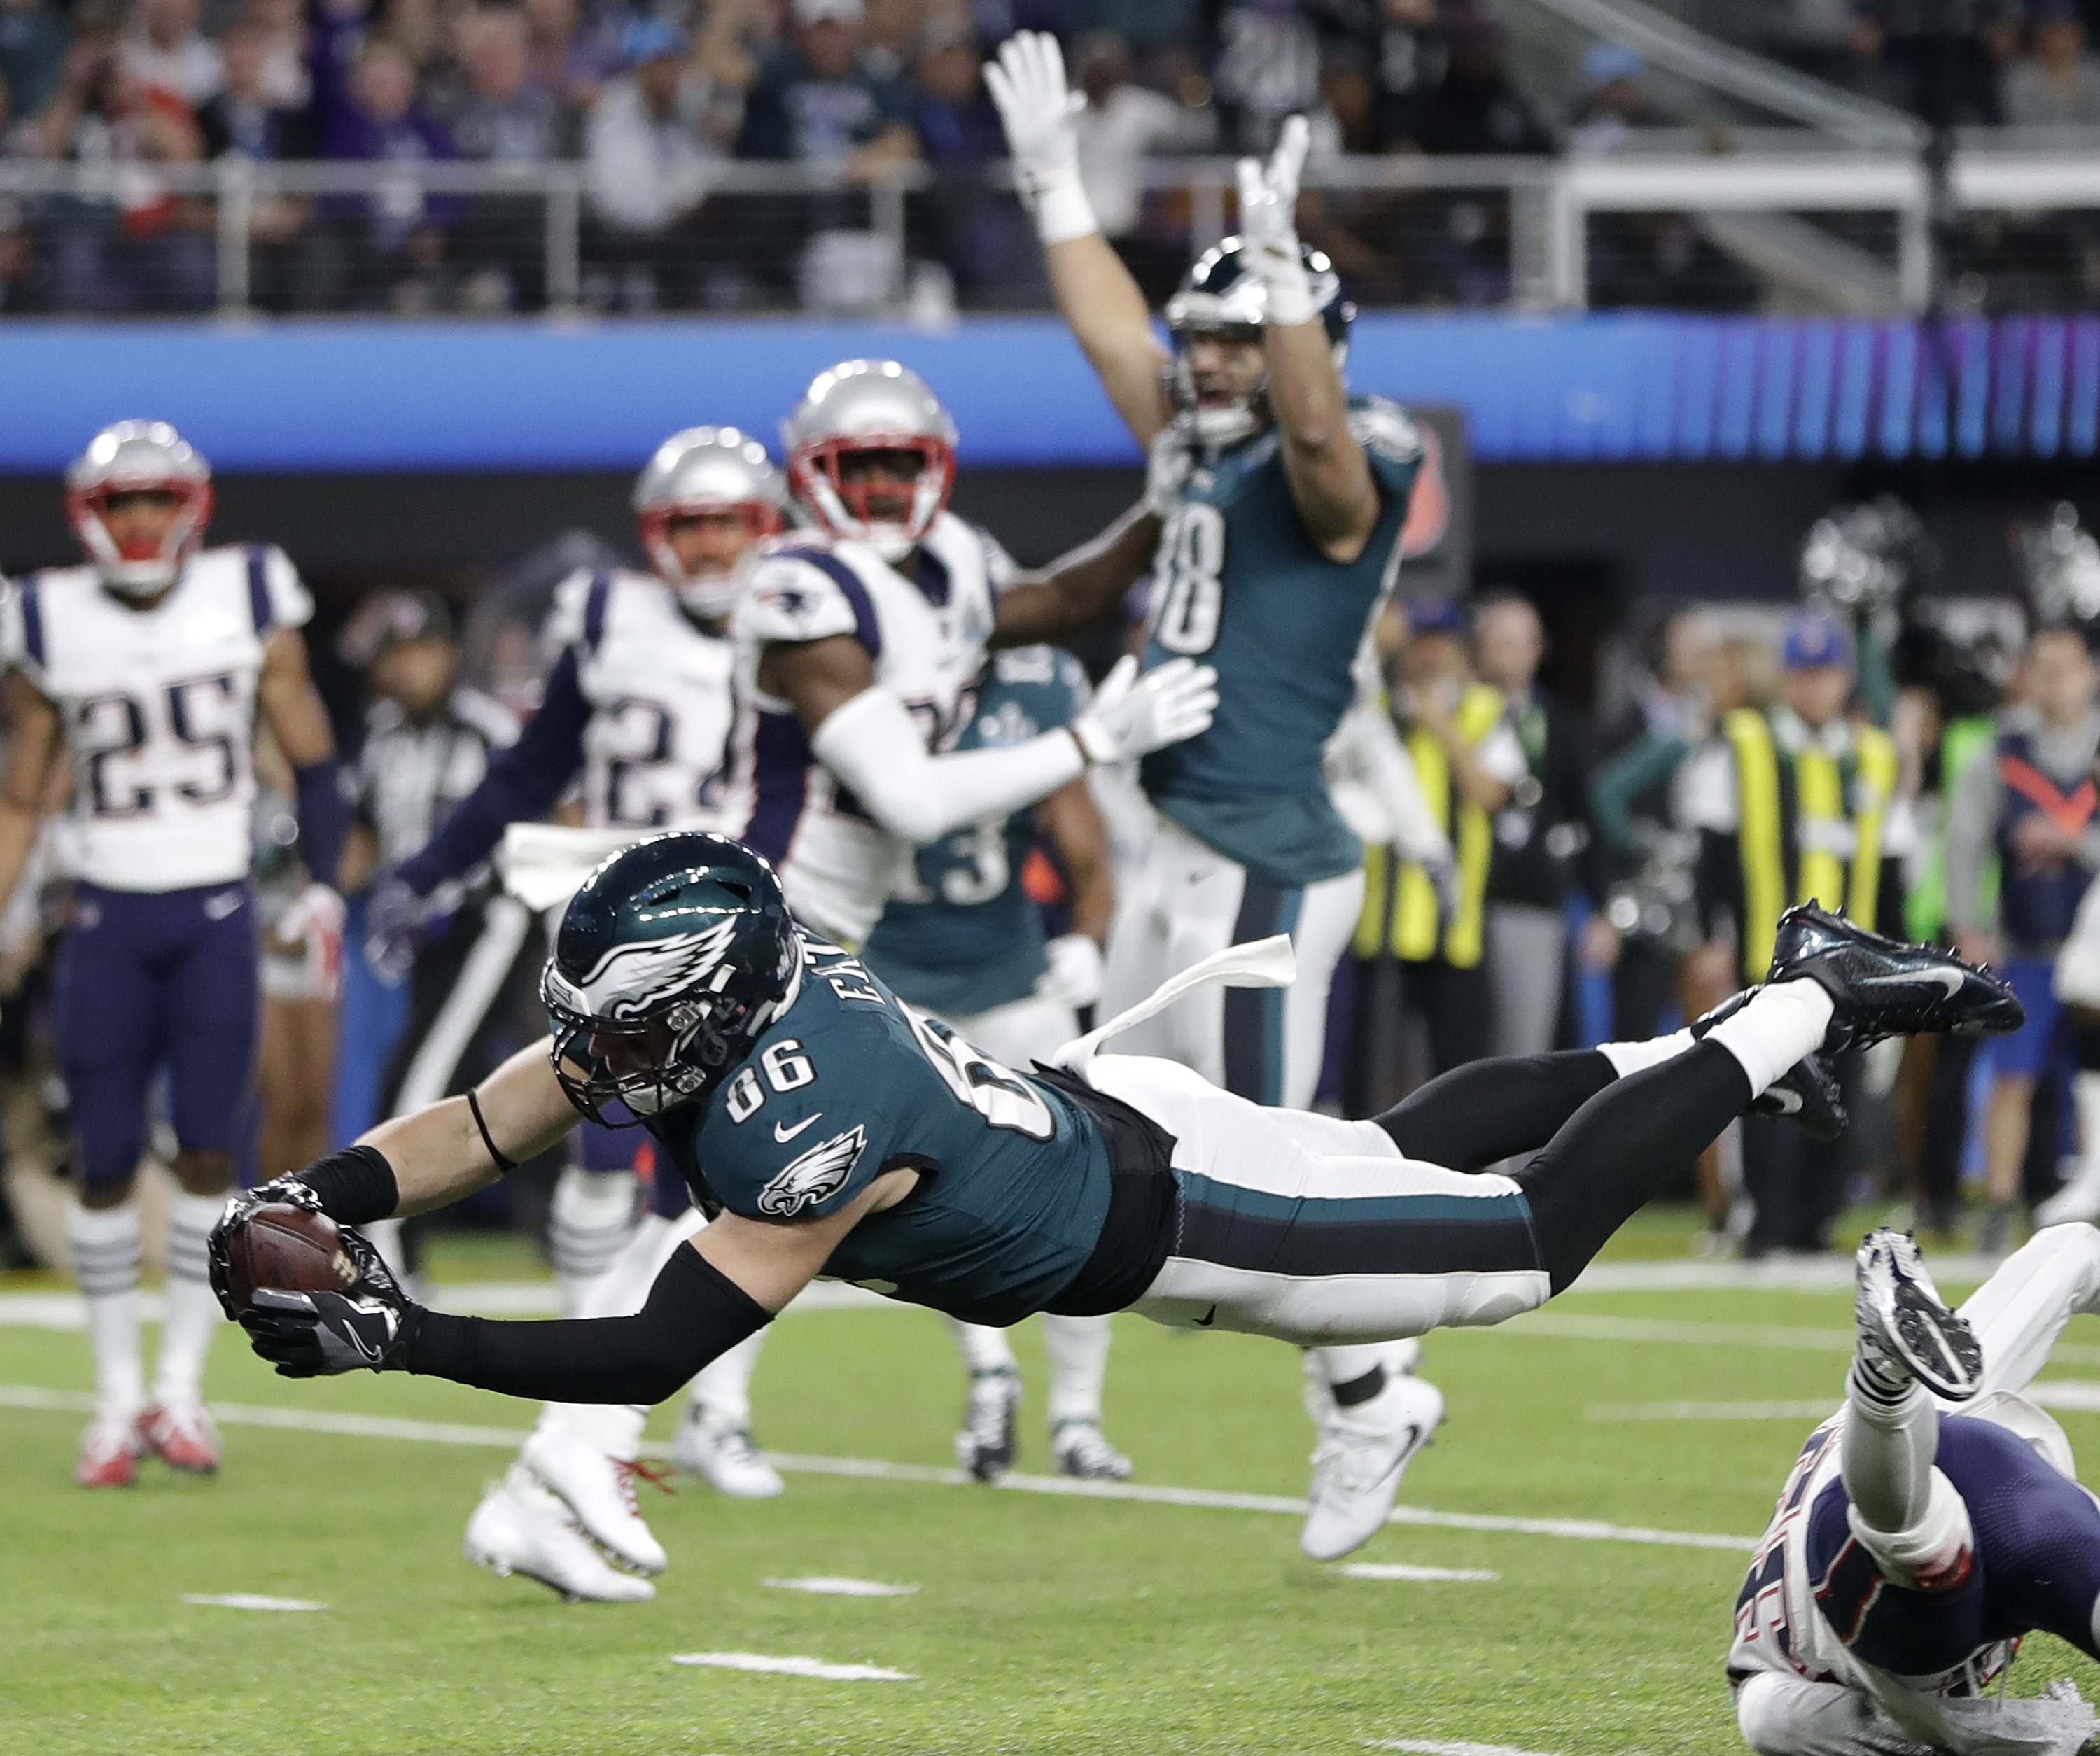 <div class='meta'><div class='origin-logo' data-origin='AP'></div><span class='caption-text' data-credit='AP Photo/Mark Humphrey'>Philadelphia Eagles' Zach Ertz dives into the end zone for a touchdown during the second half of the NFL Super Bowl 52 football game.</span></div>